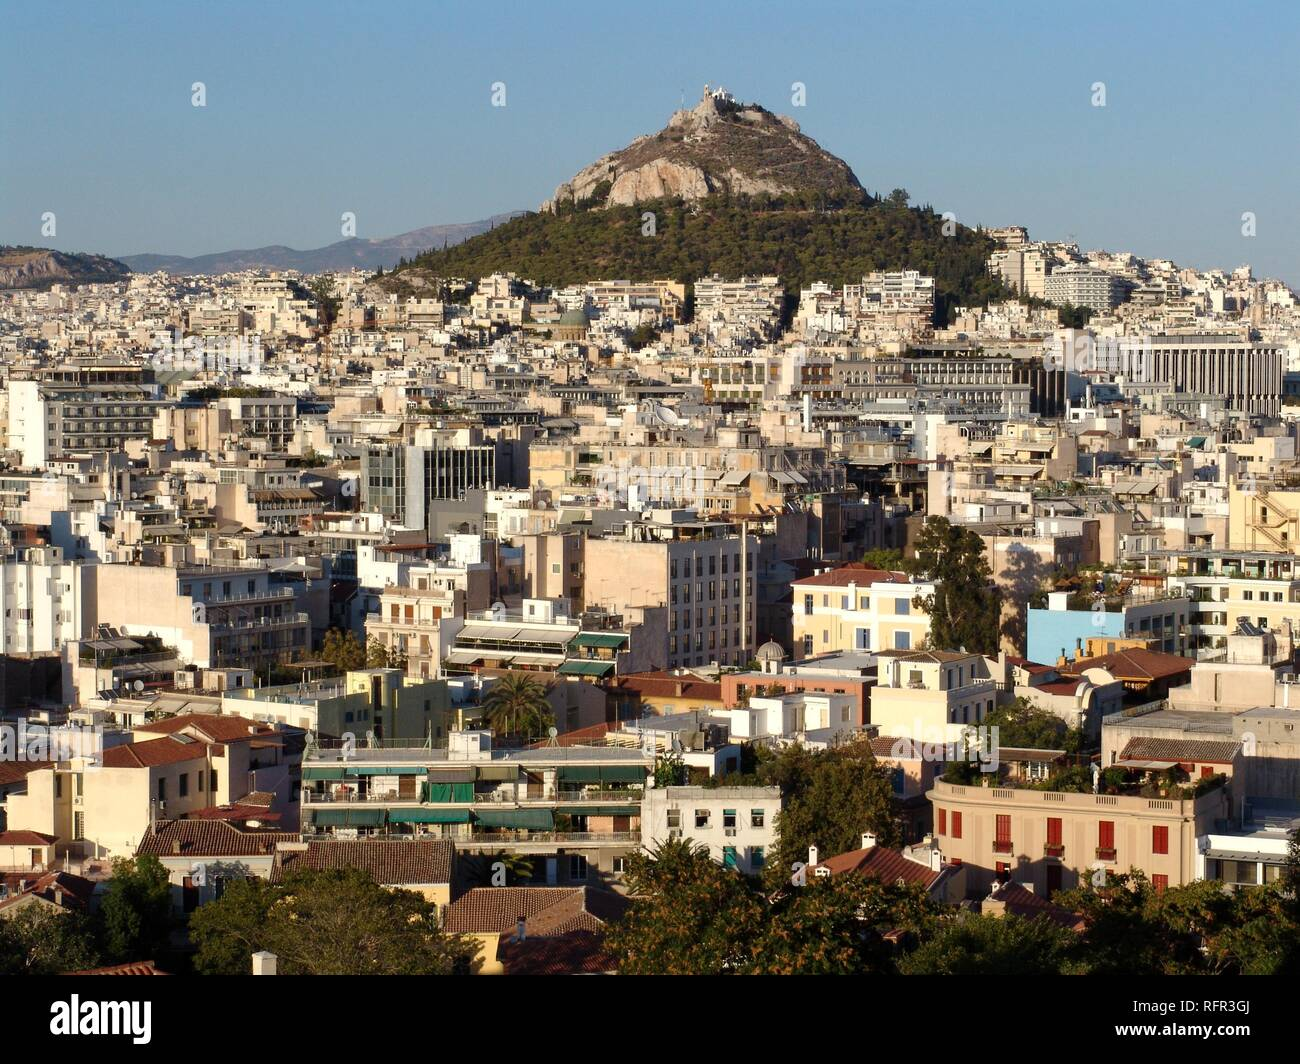 City centre, Mount Lykavittos with the Chapel of St. George, Athen, Griechenland Stock Photo